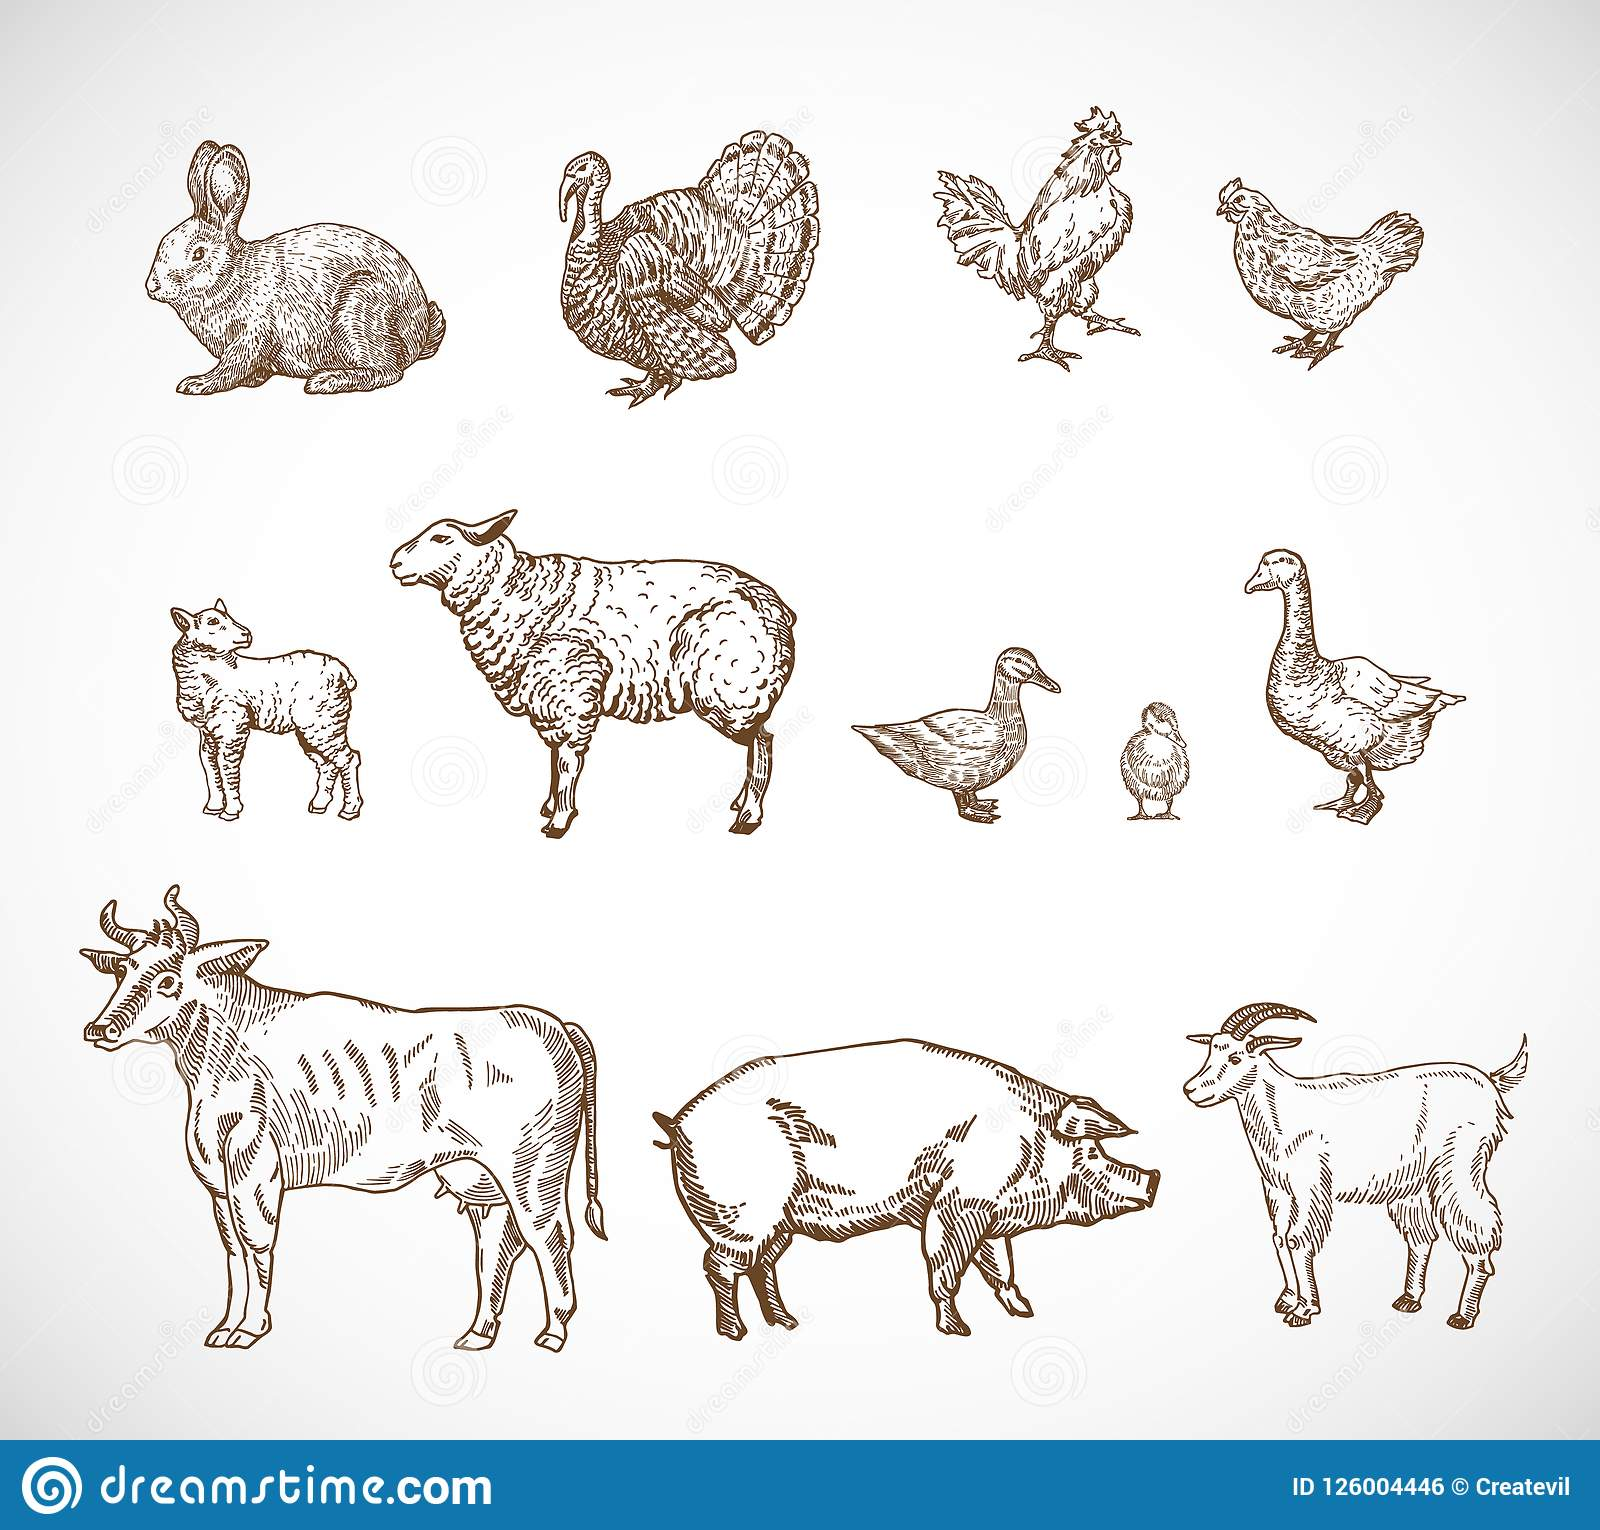 Hand Drawn Domestic Animals Set. A Collection of Pig, Cow, Goat, Lamb and Birds Sketch Silhouettes. Engraving Style